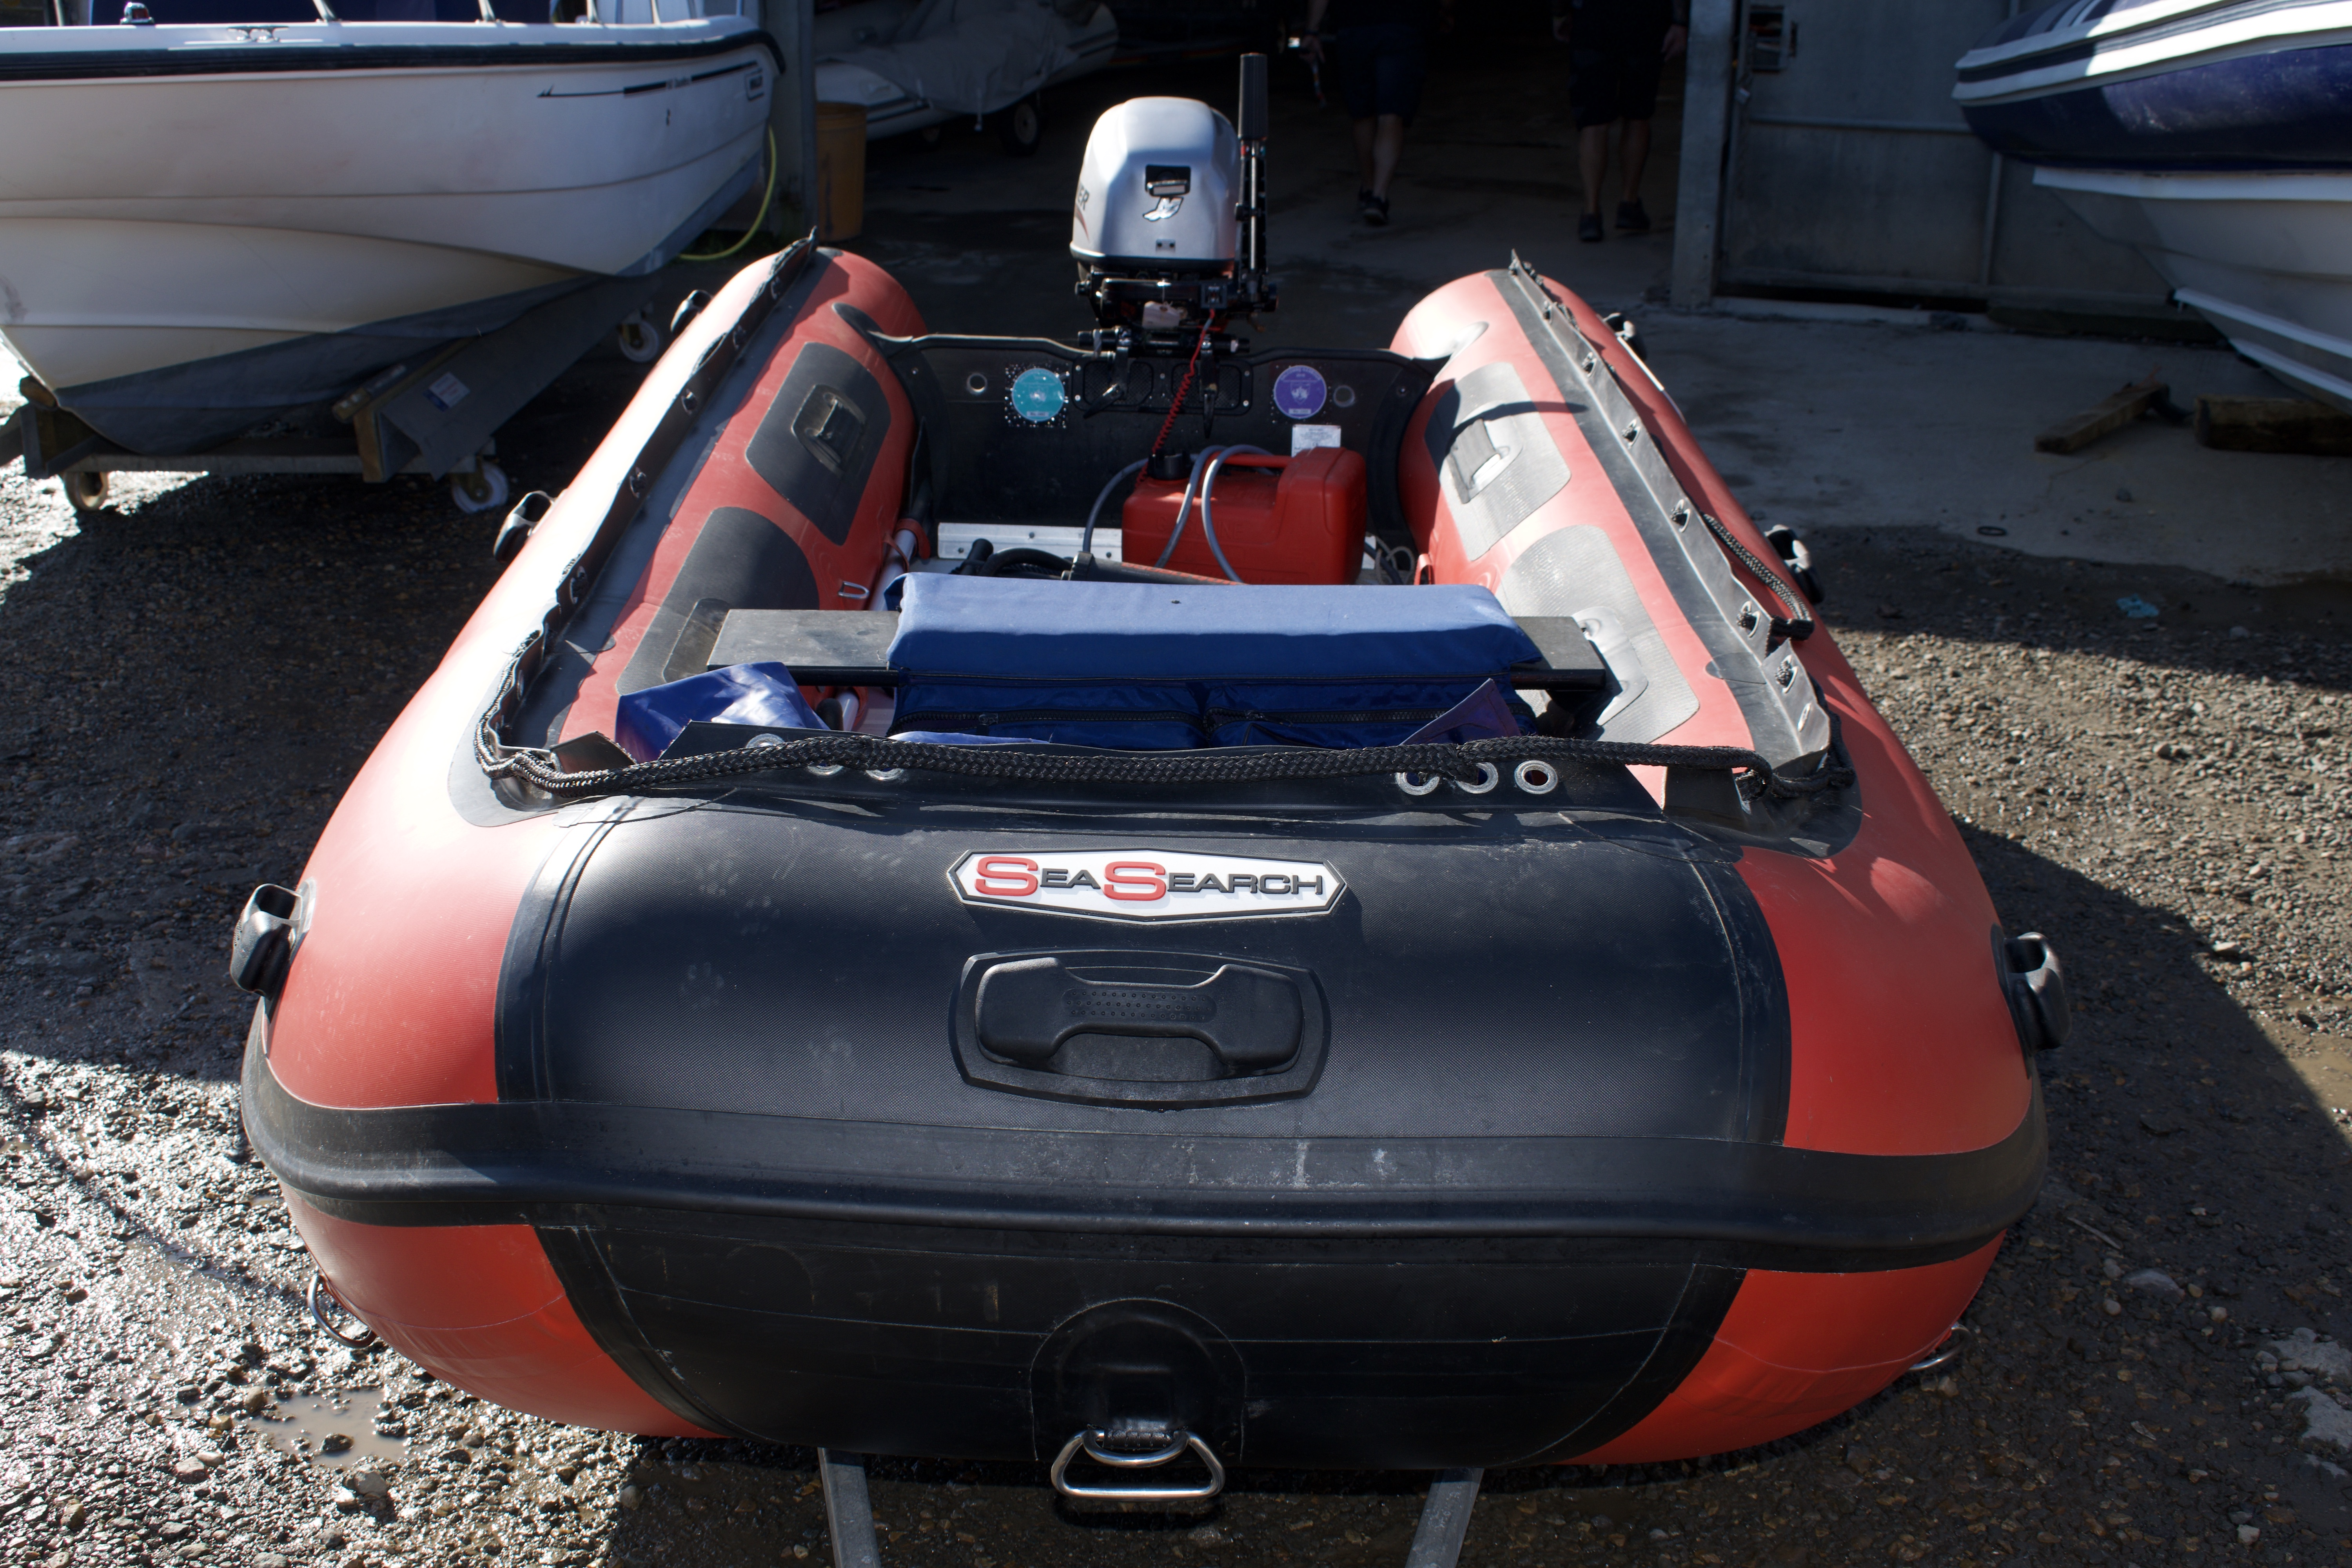 Used Sea Search Inflatables 390 For Sale on craigslist